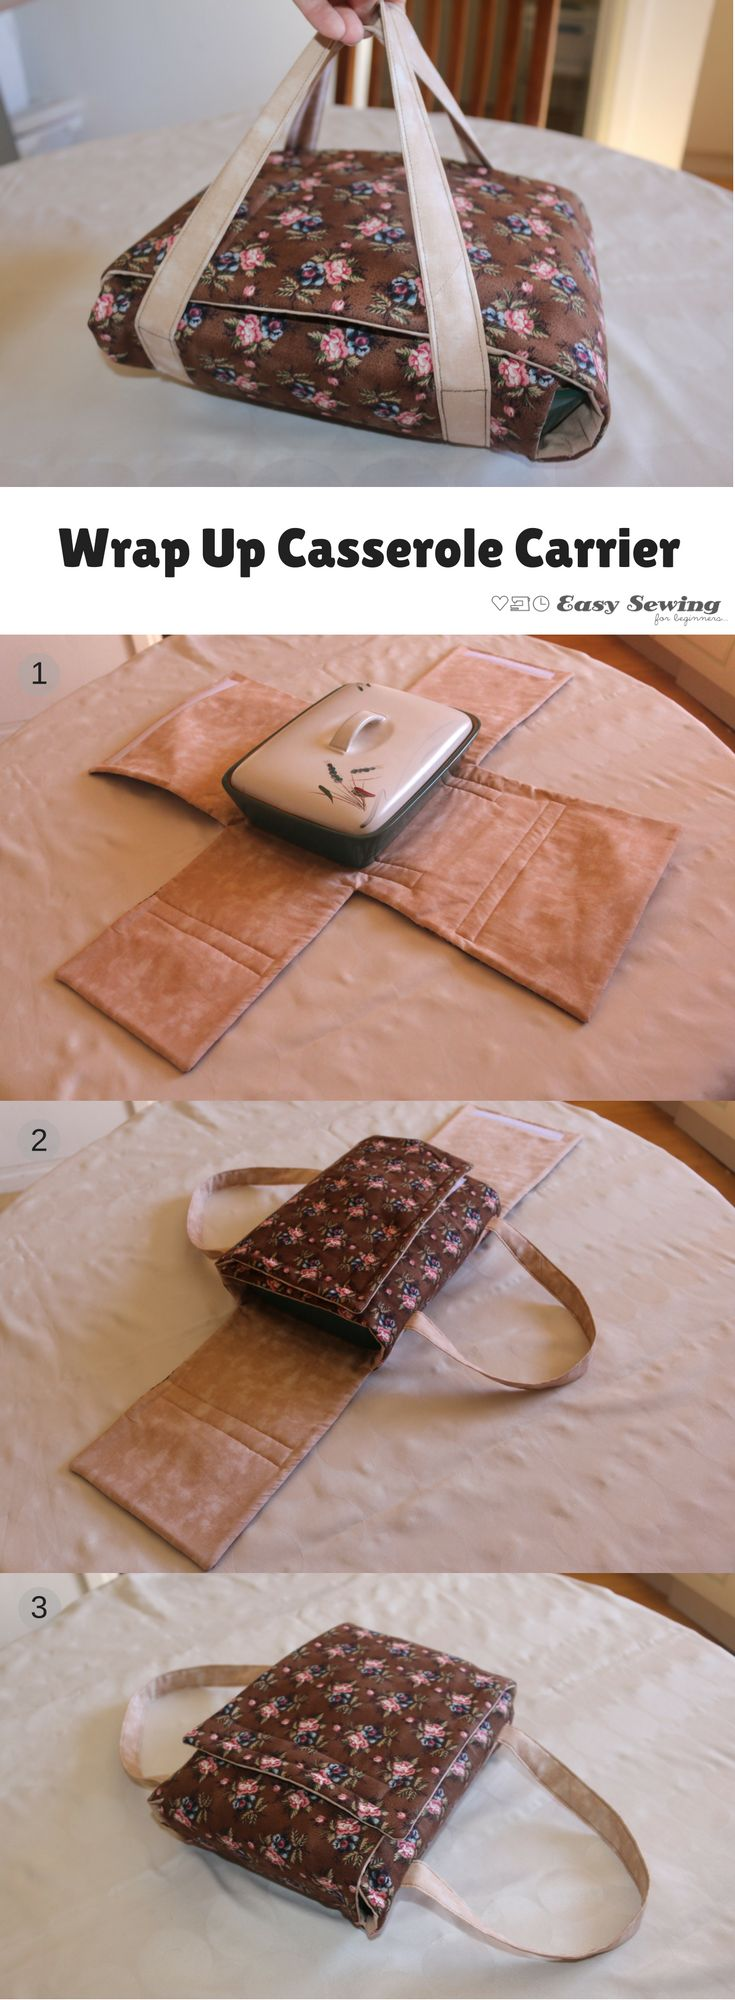 This wrap up casserole carrier is a very easy sewing project for beginning sewers